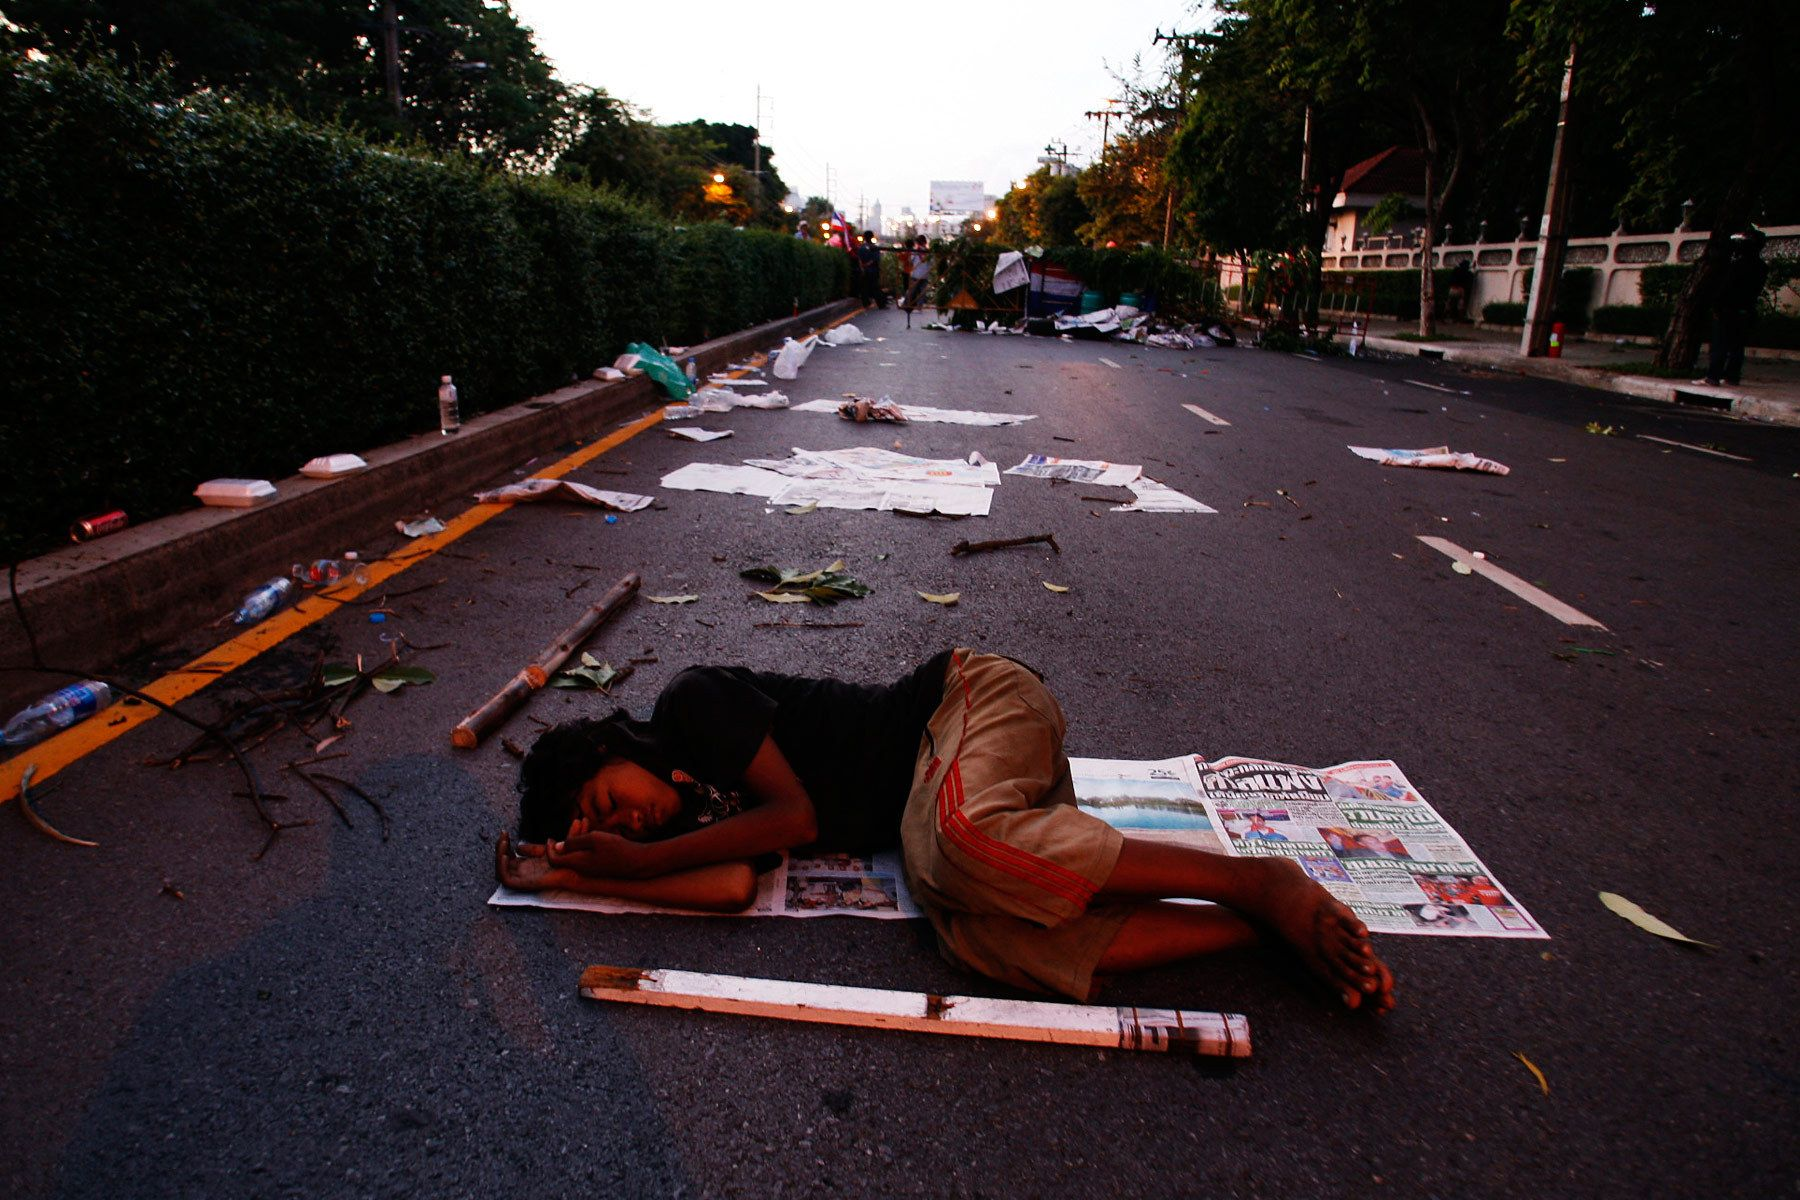 A ten-year-old boy protester from the Northeast sleeps on the street at dawn at a roadblock set by the anti-government United Front for Democracy against Dictatorship (UDD) in Bangkok. Two days of rioting by the UDD left two people dead and 100 injured.